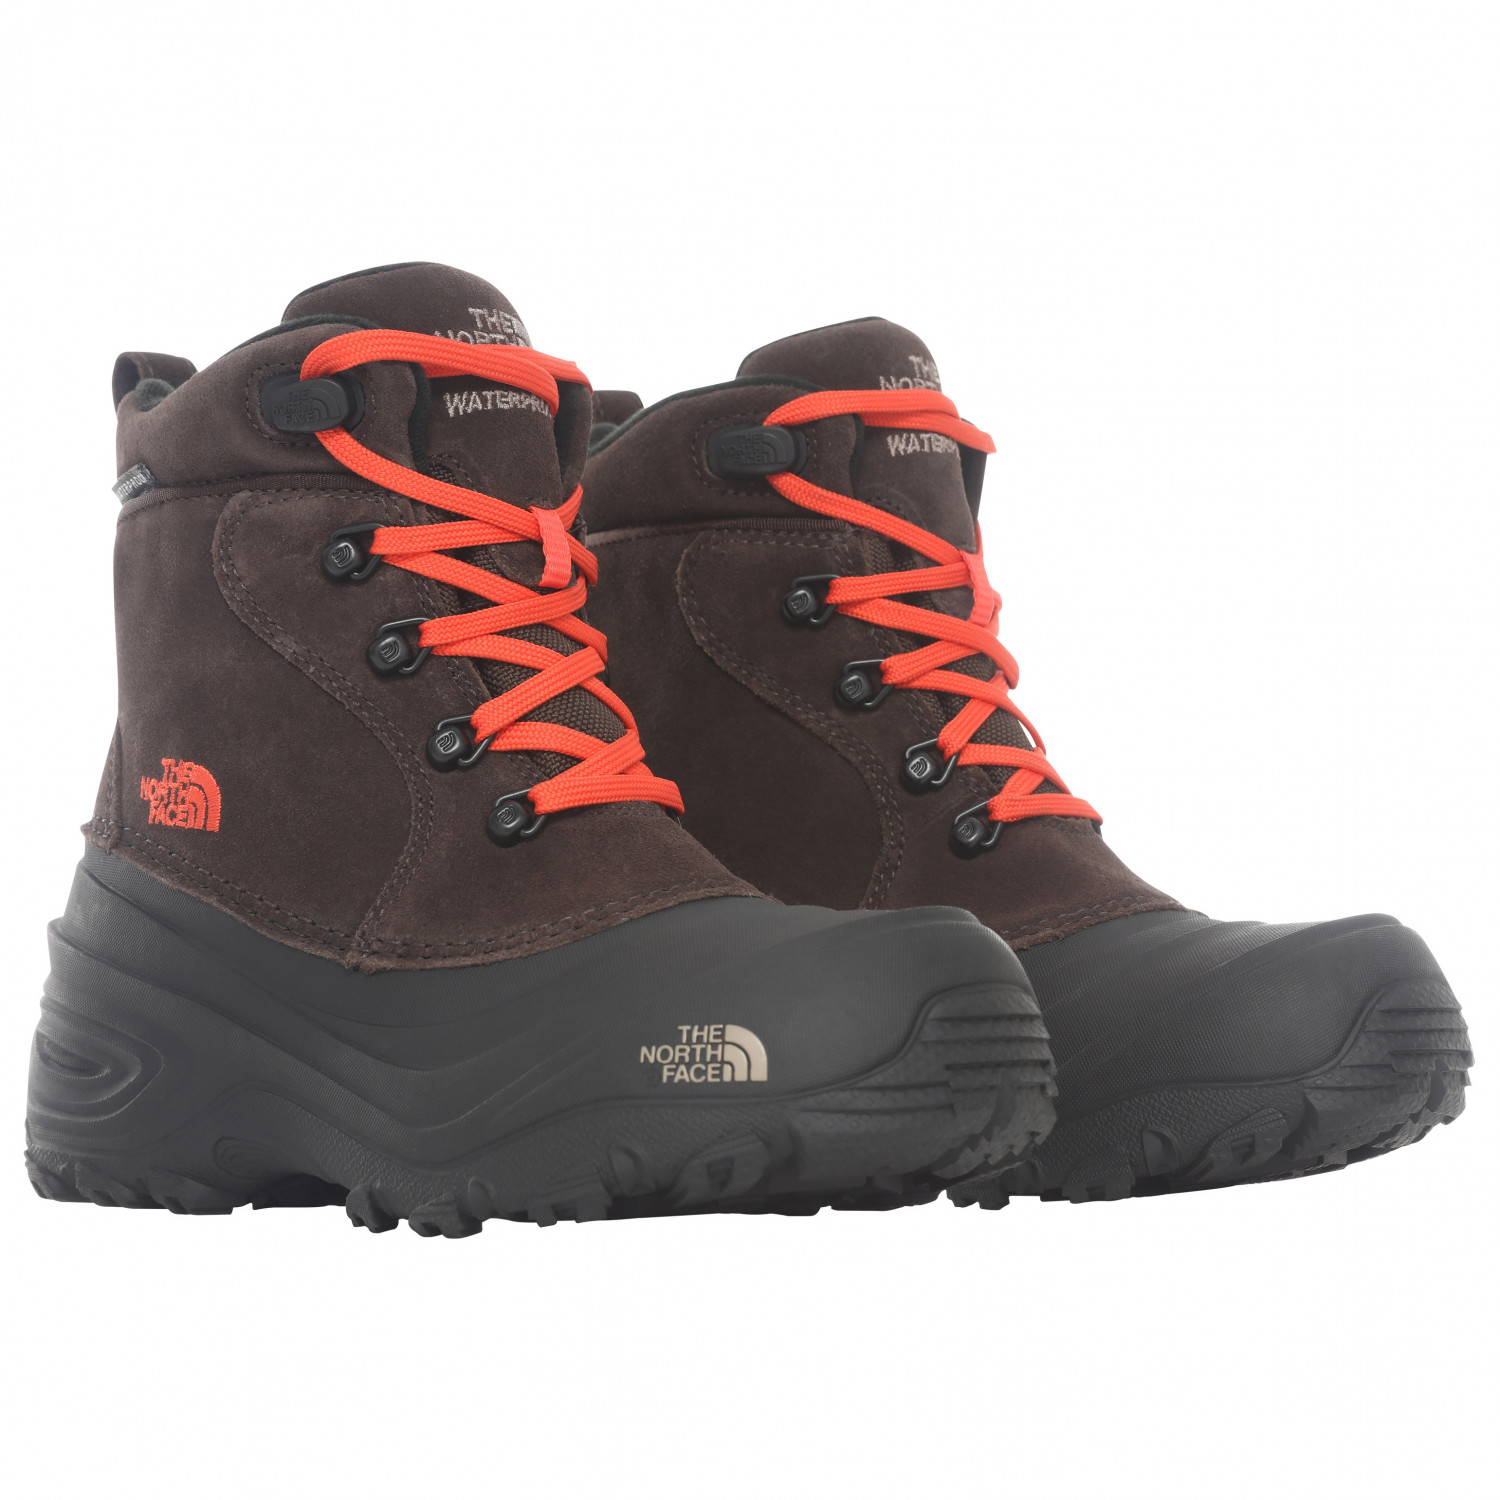 The North Face Youth Chilkat Lace Ii Winter Boots Kids